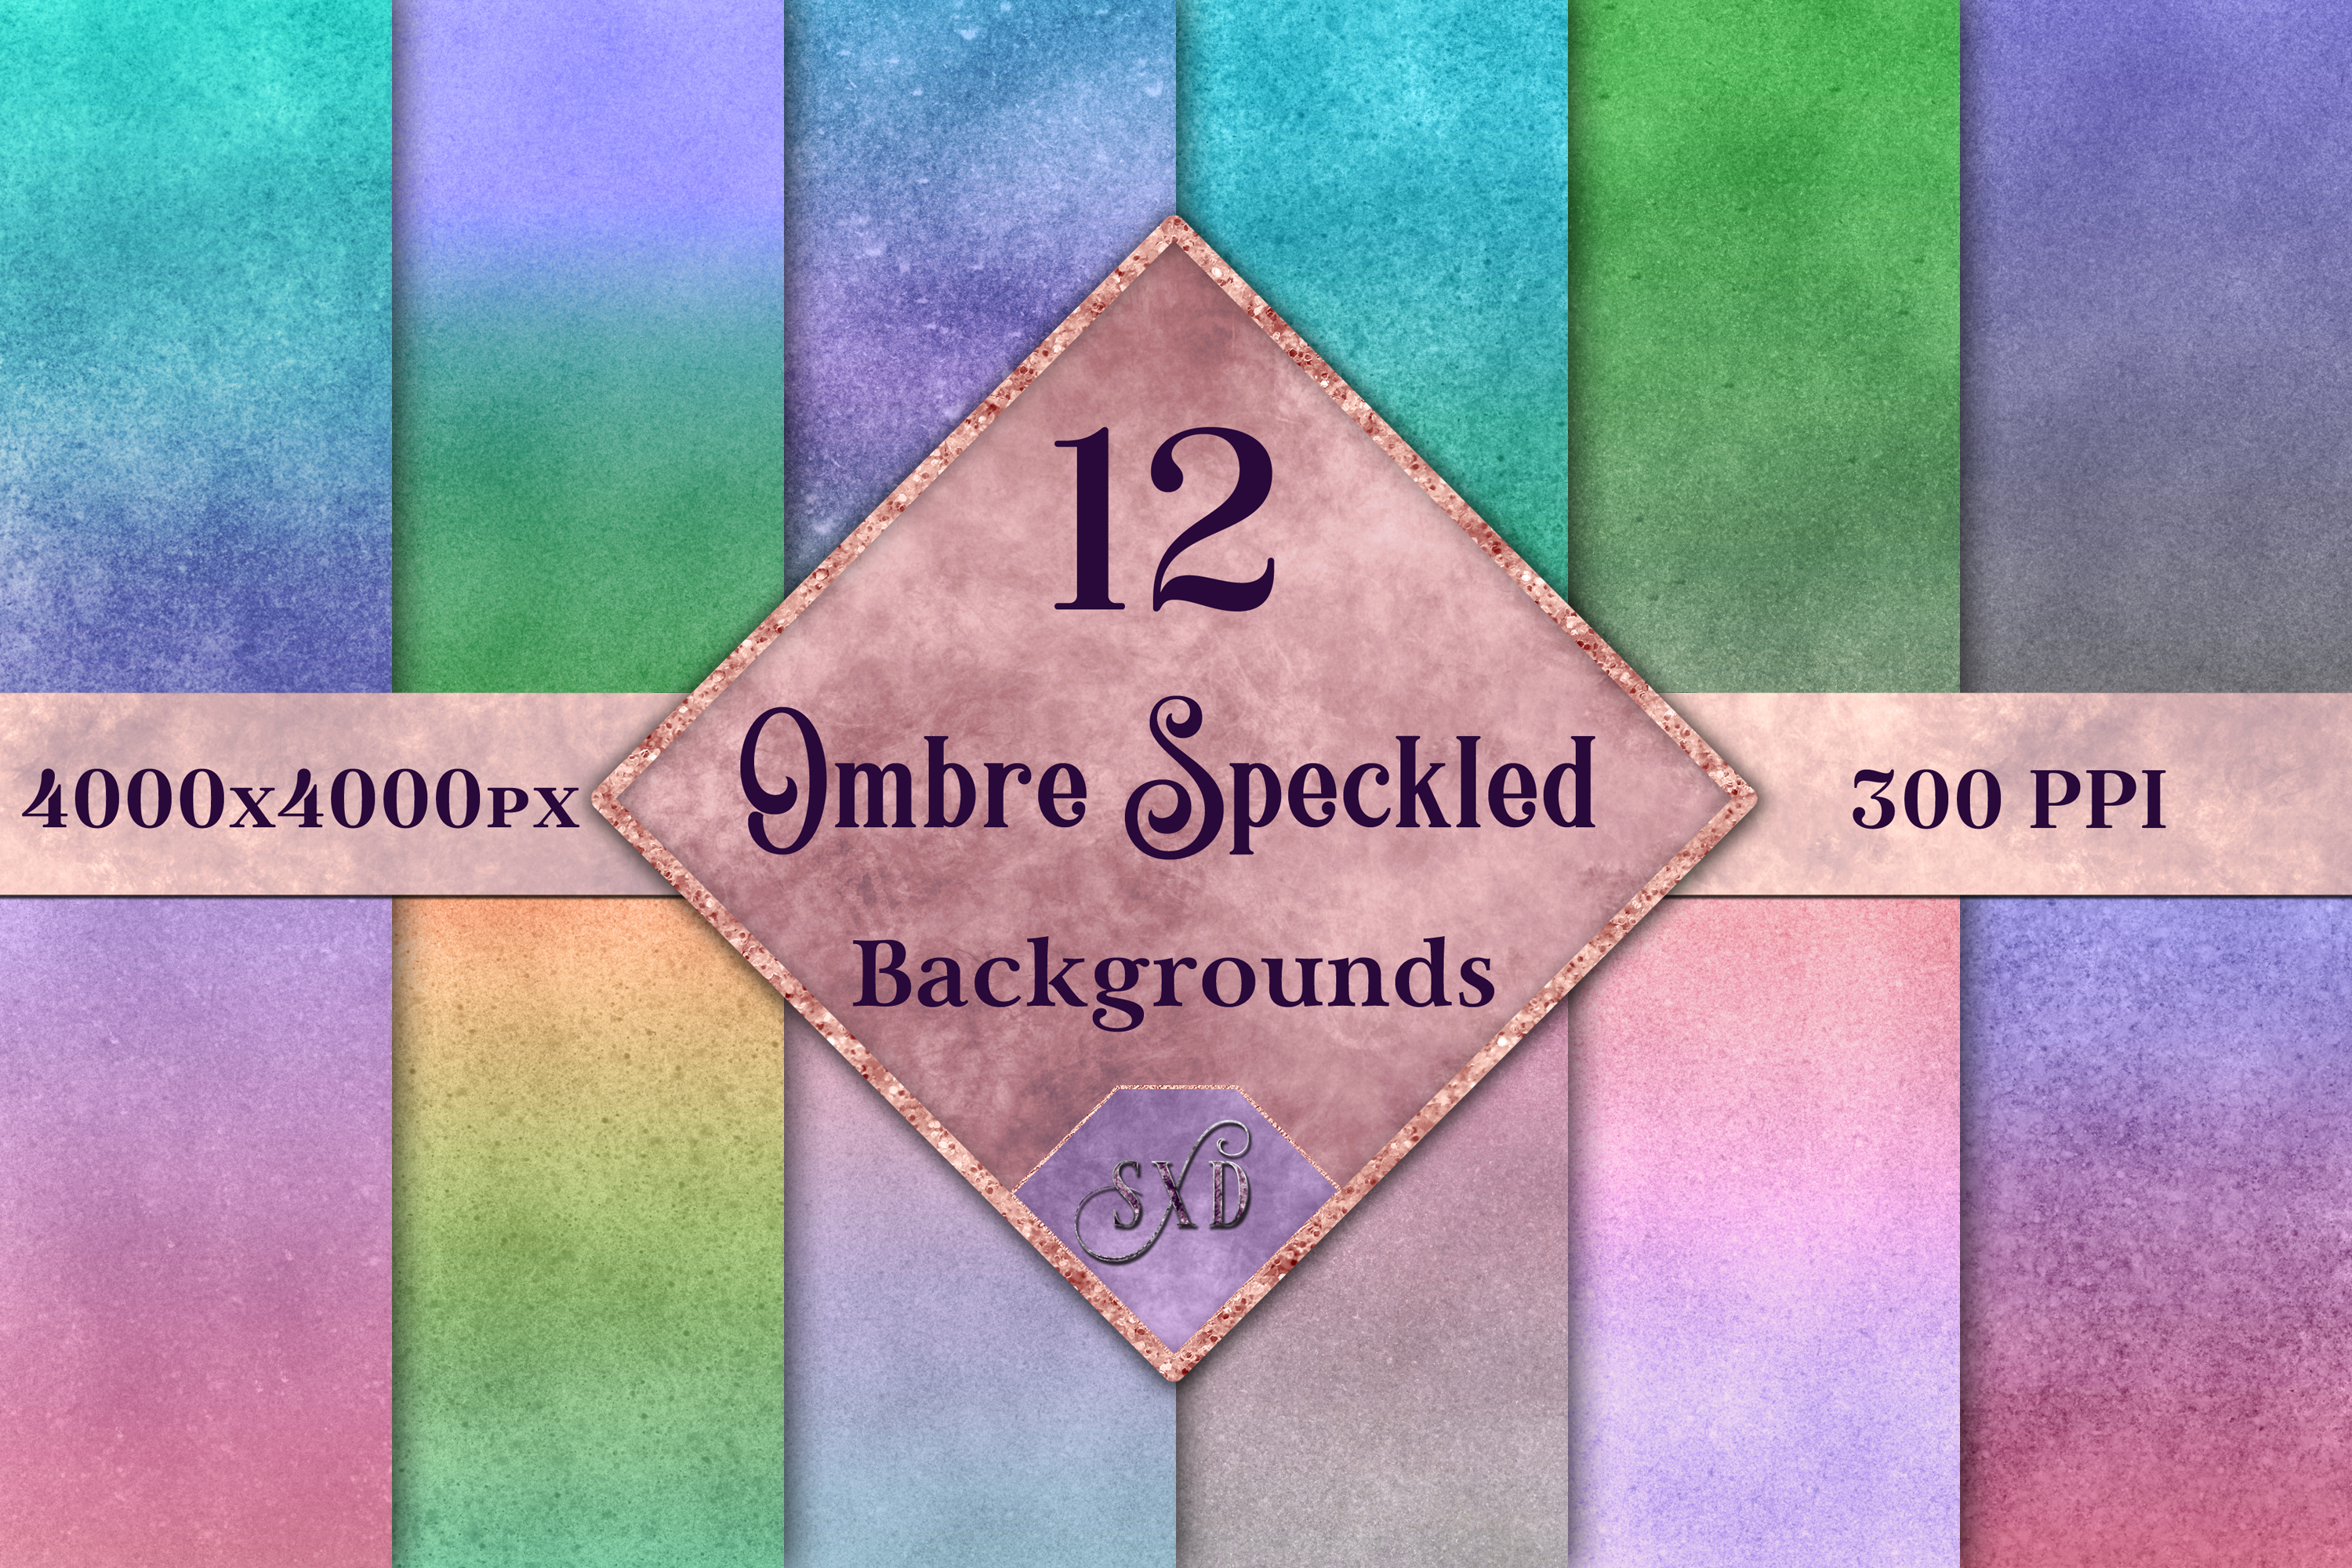 Ombre Speckled Backgrounds - 12 Image Textures Set example image 1